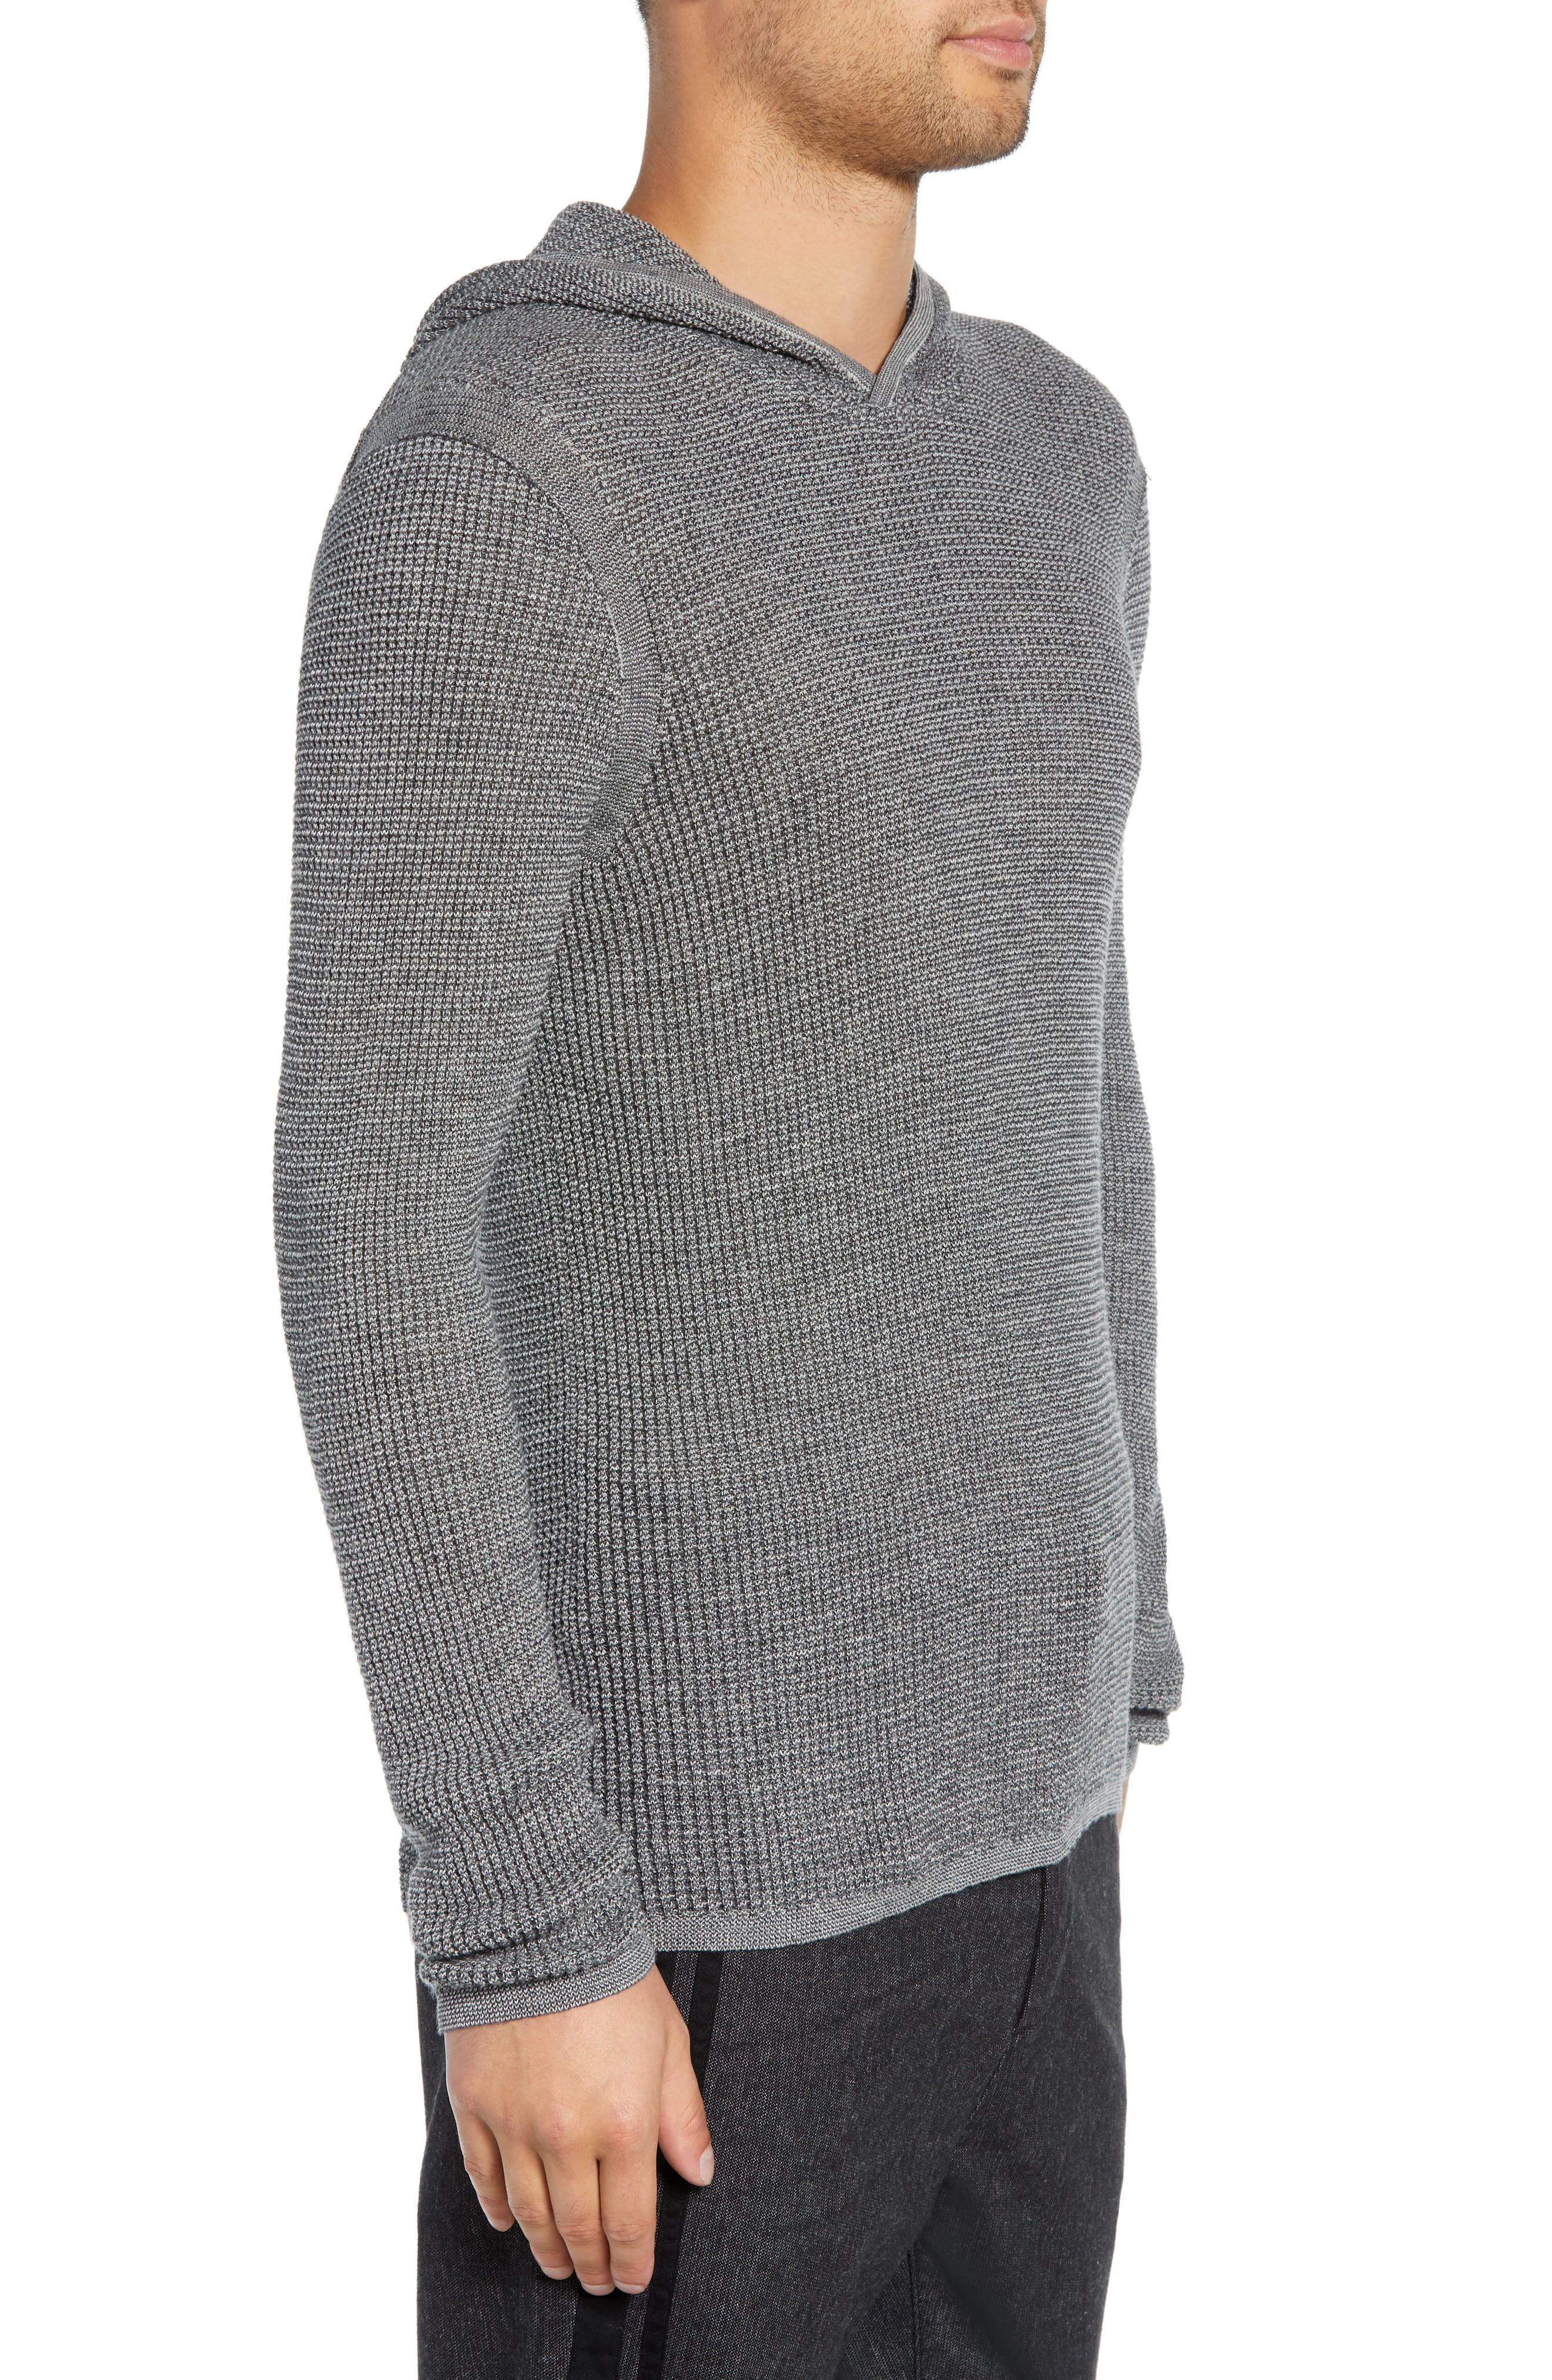 Thermal Hooded Sweater,                             Alternate thumbnail 3, color,                             CHARCOAL HEATHER